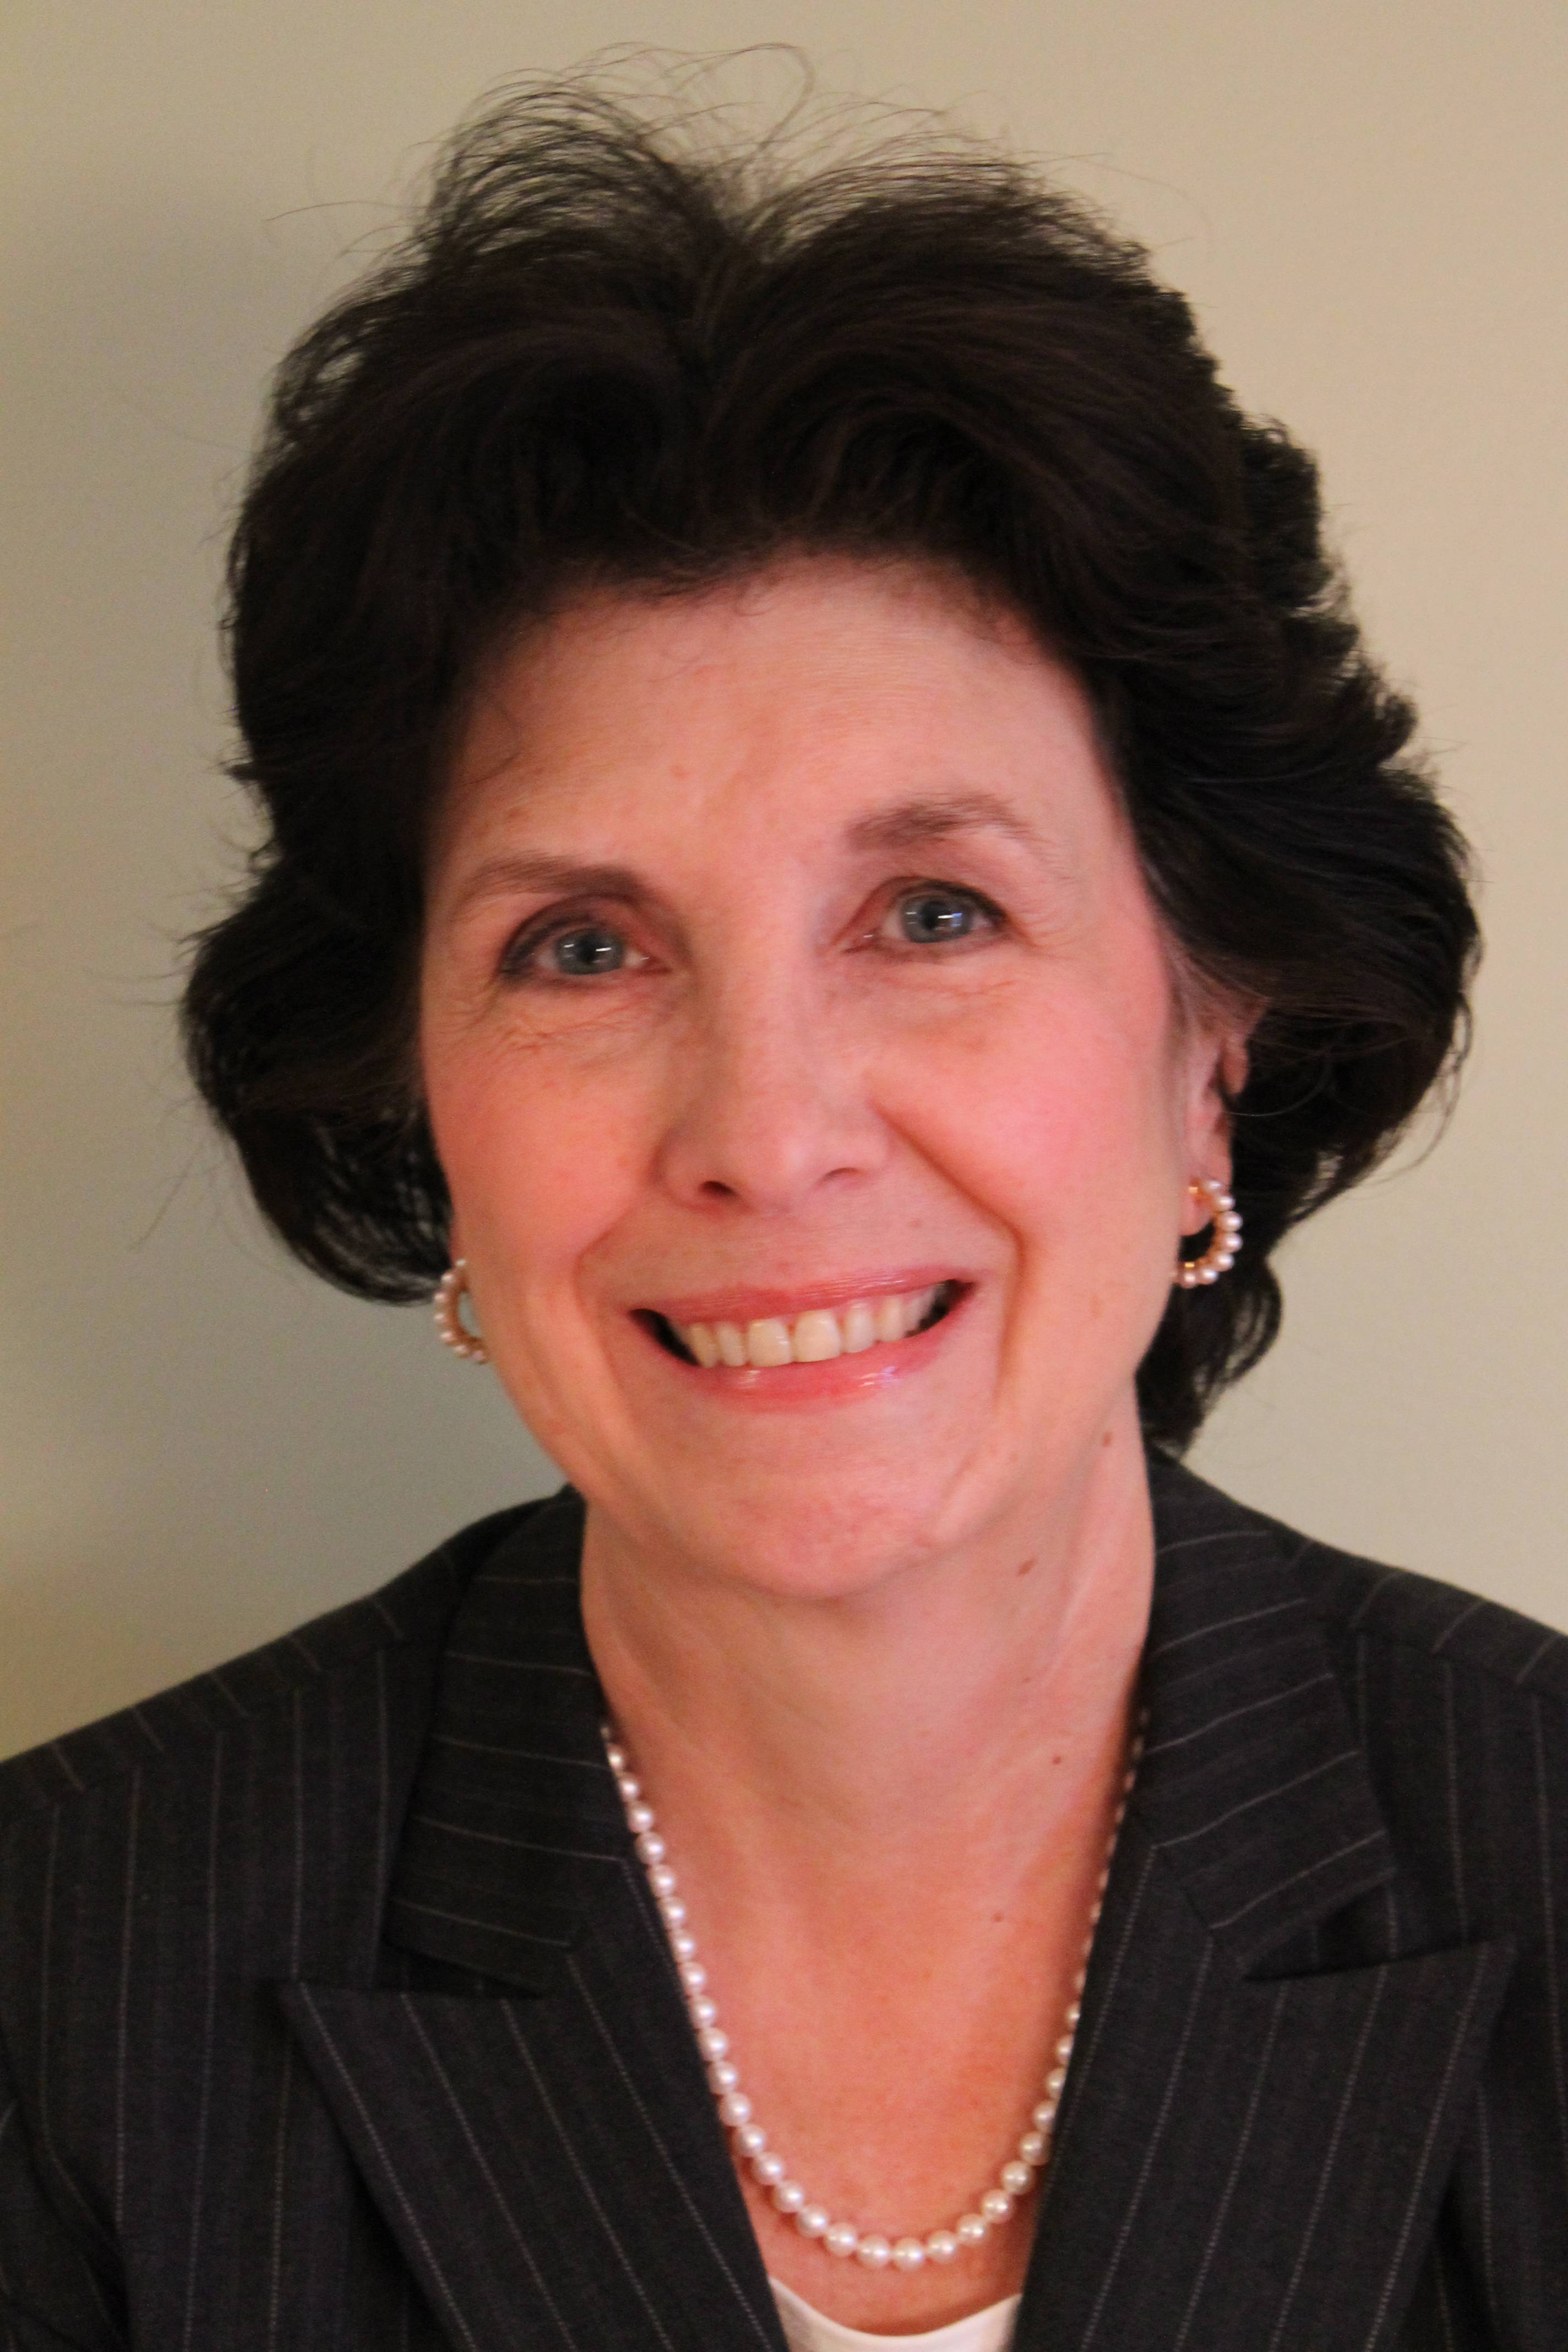 Patricia Kelly, running for Bartlett Village President (4-year Term)